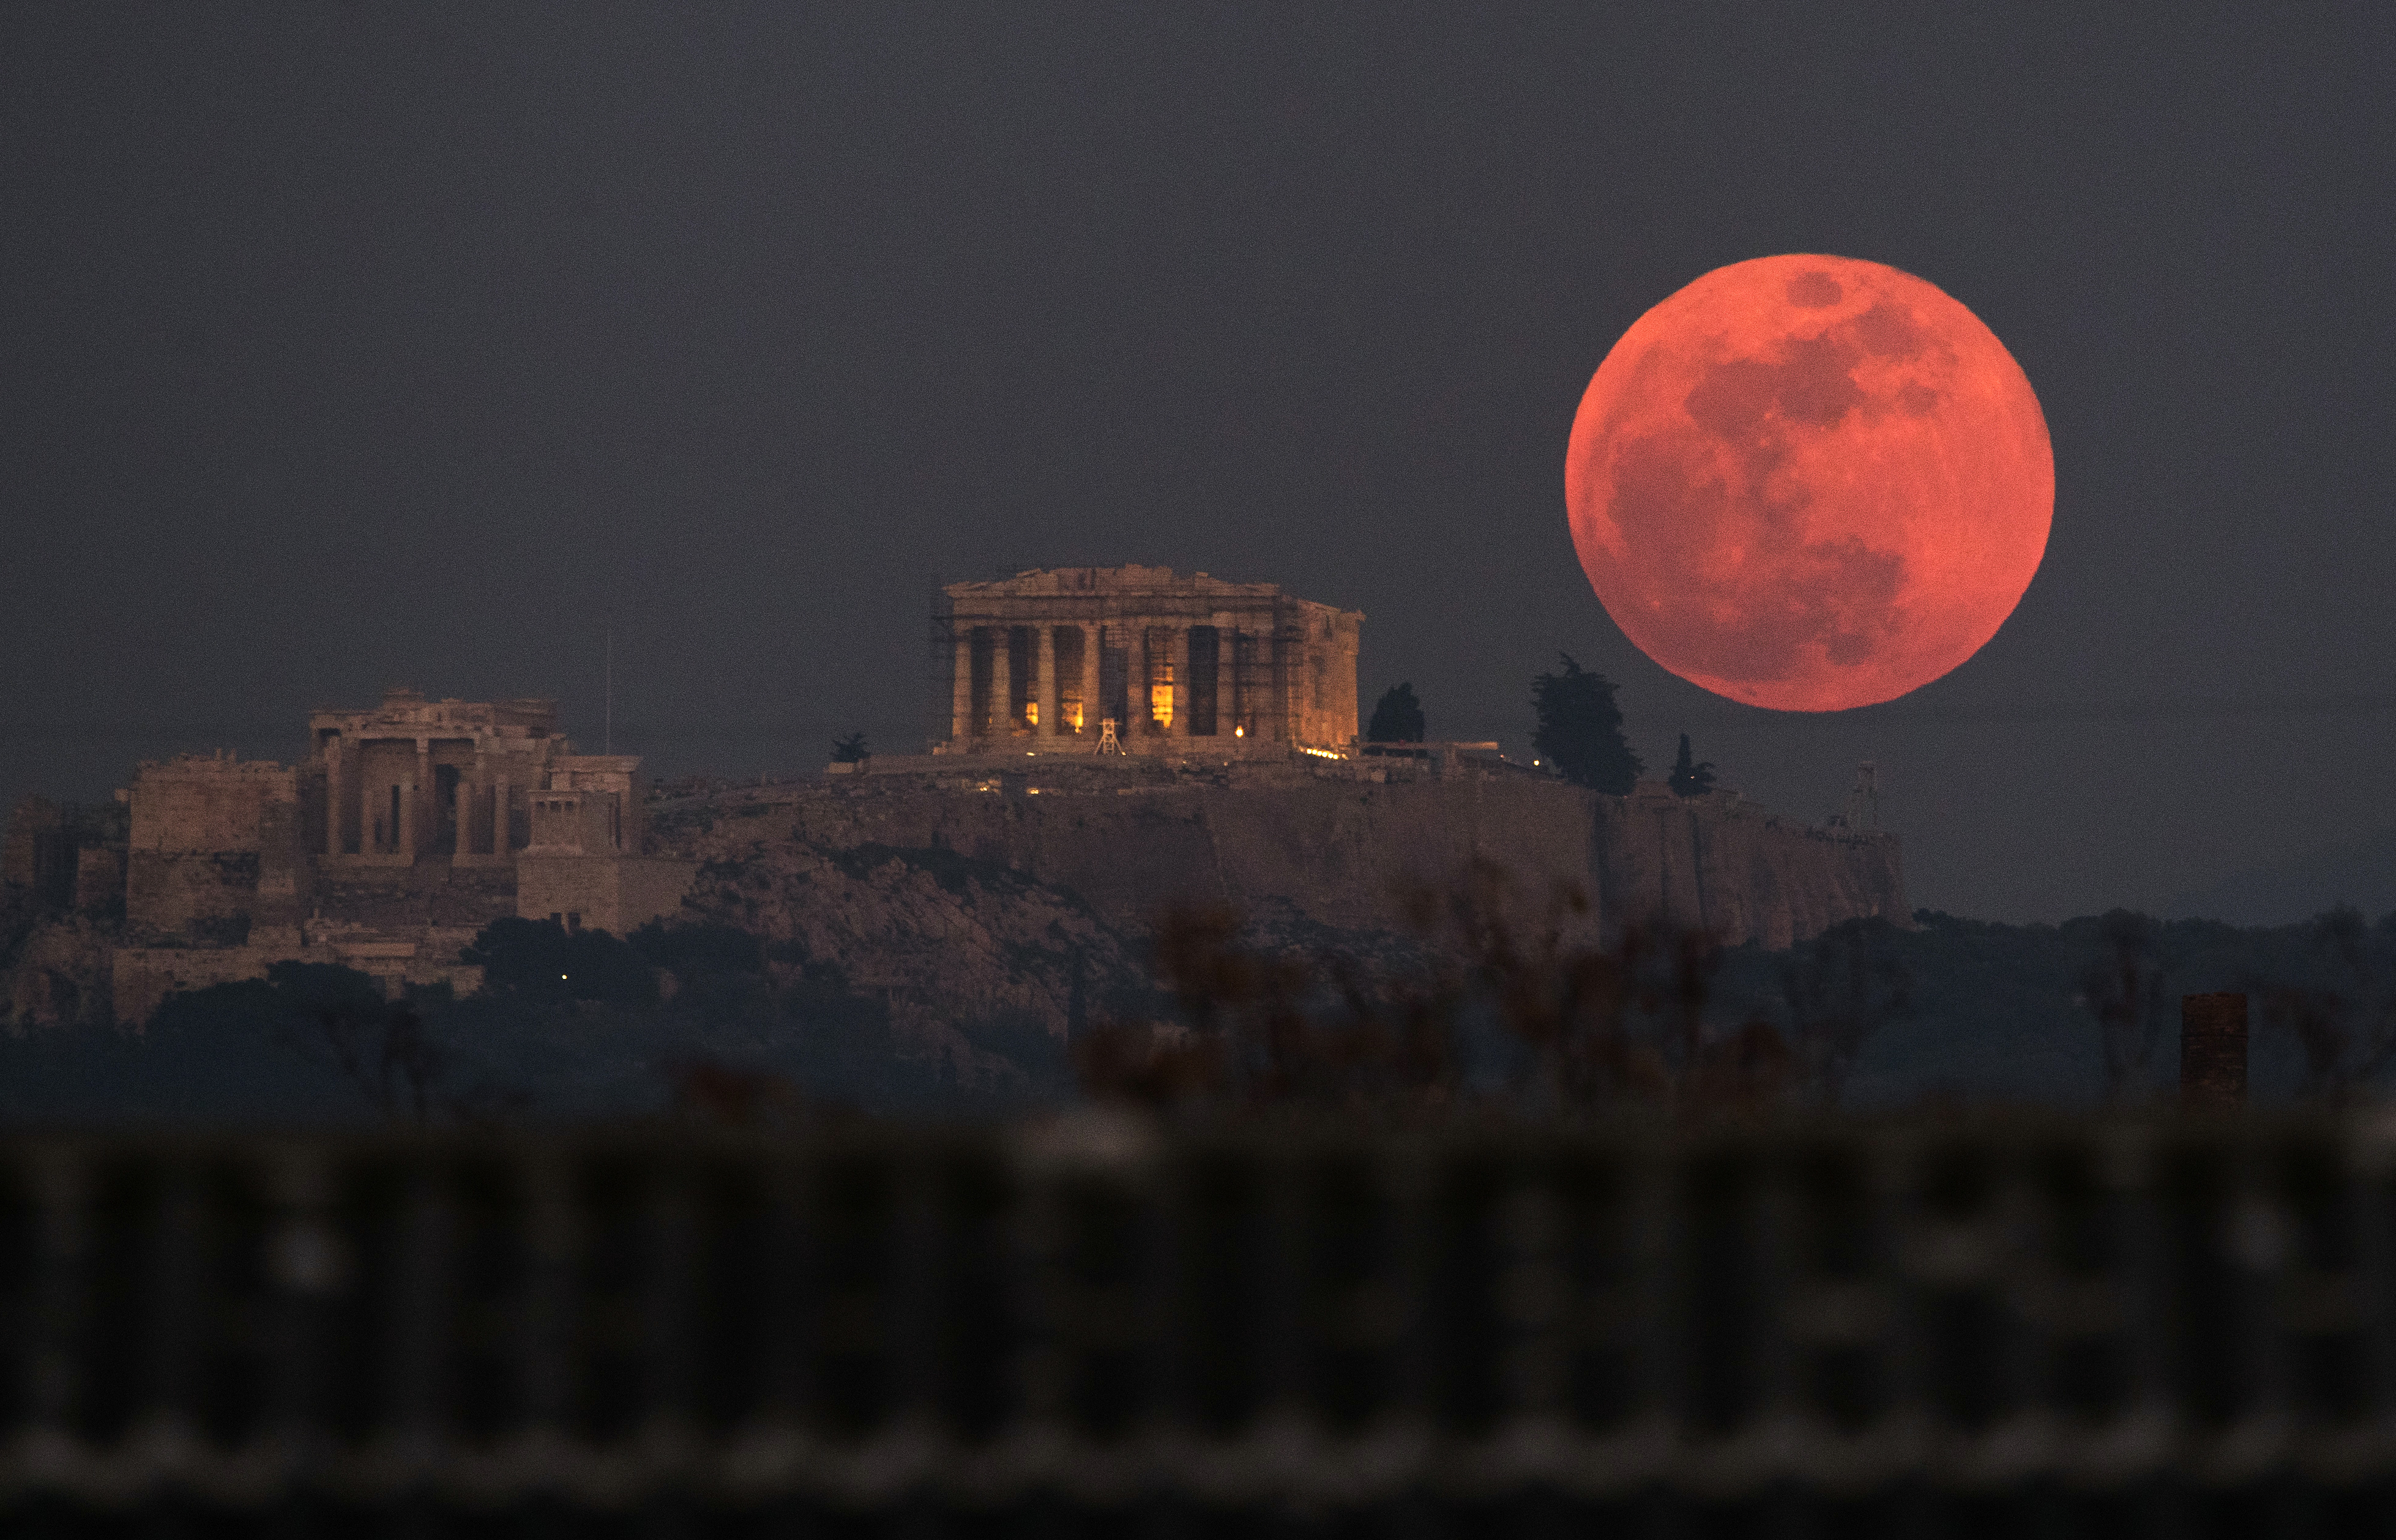 A super blue blood moon rises behind the 2,500-year-old Parthenon temple on the Acropolis of Athens, Greece, Jan. 31, 2018.